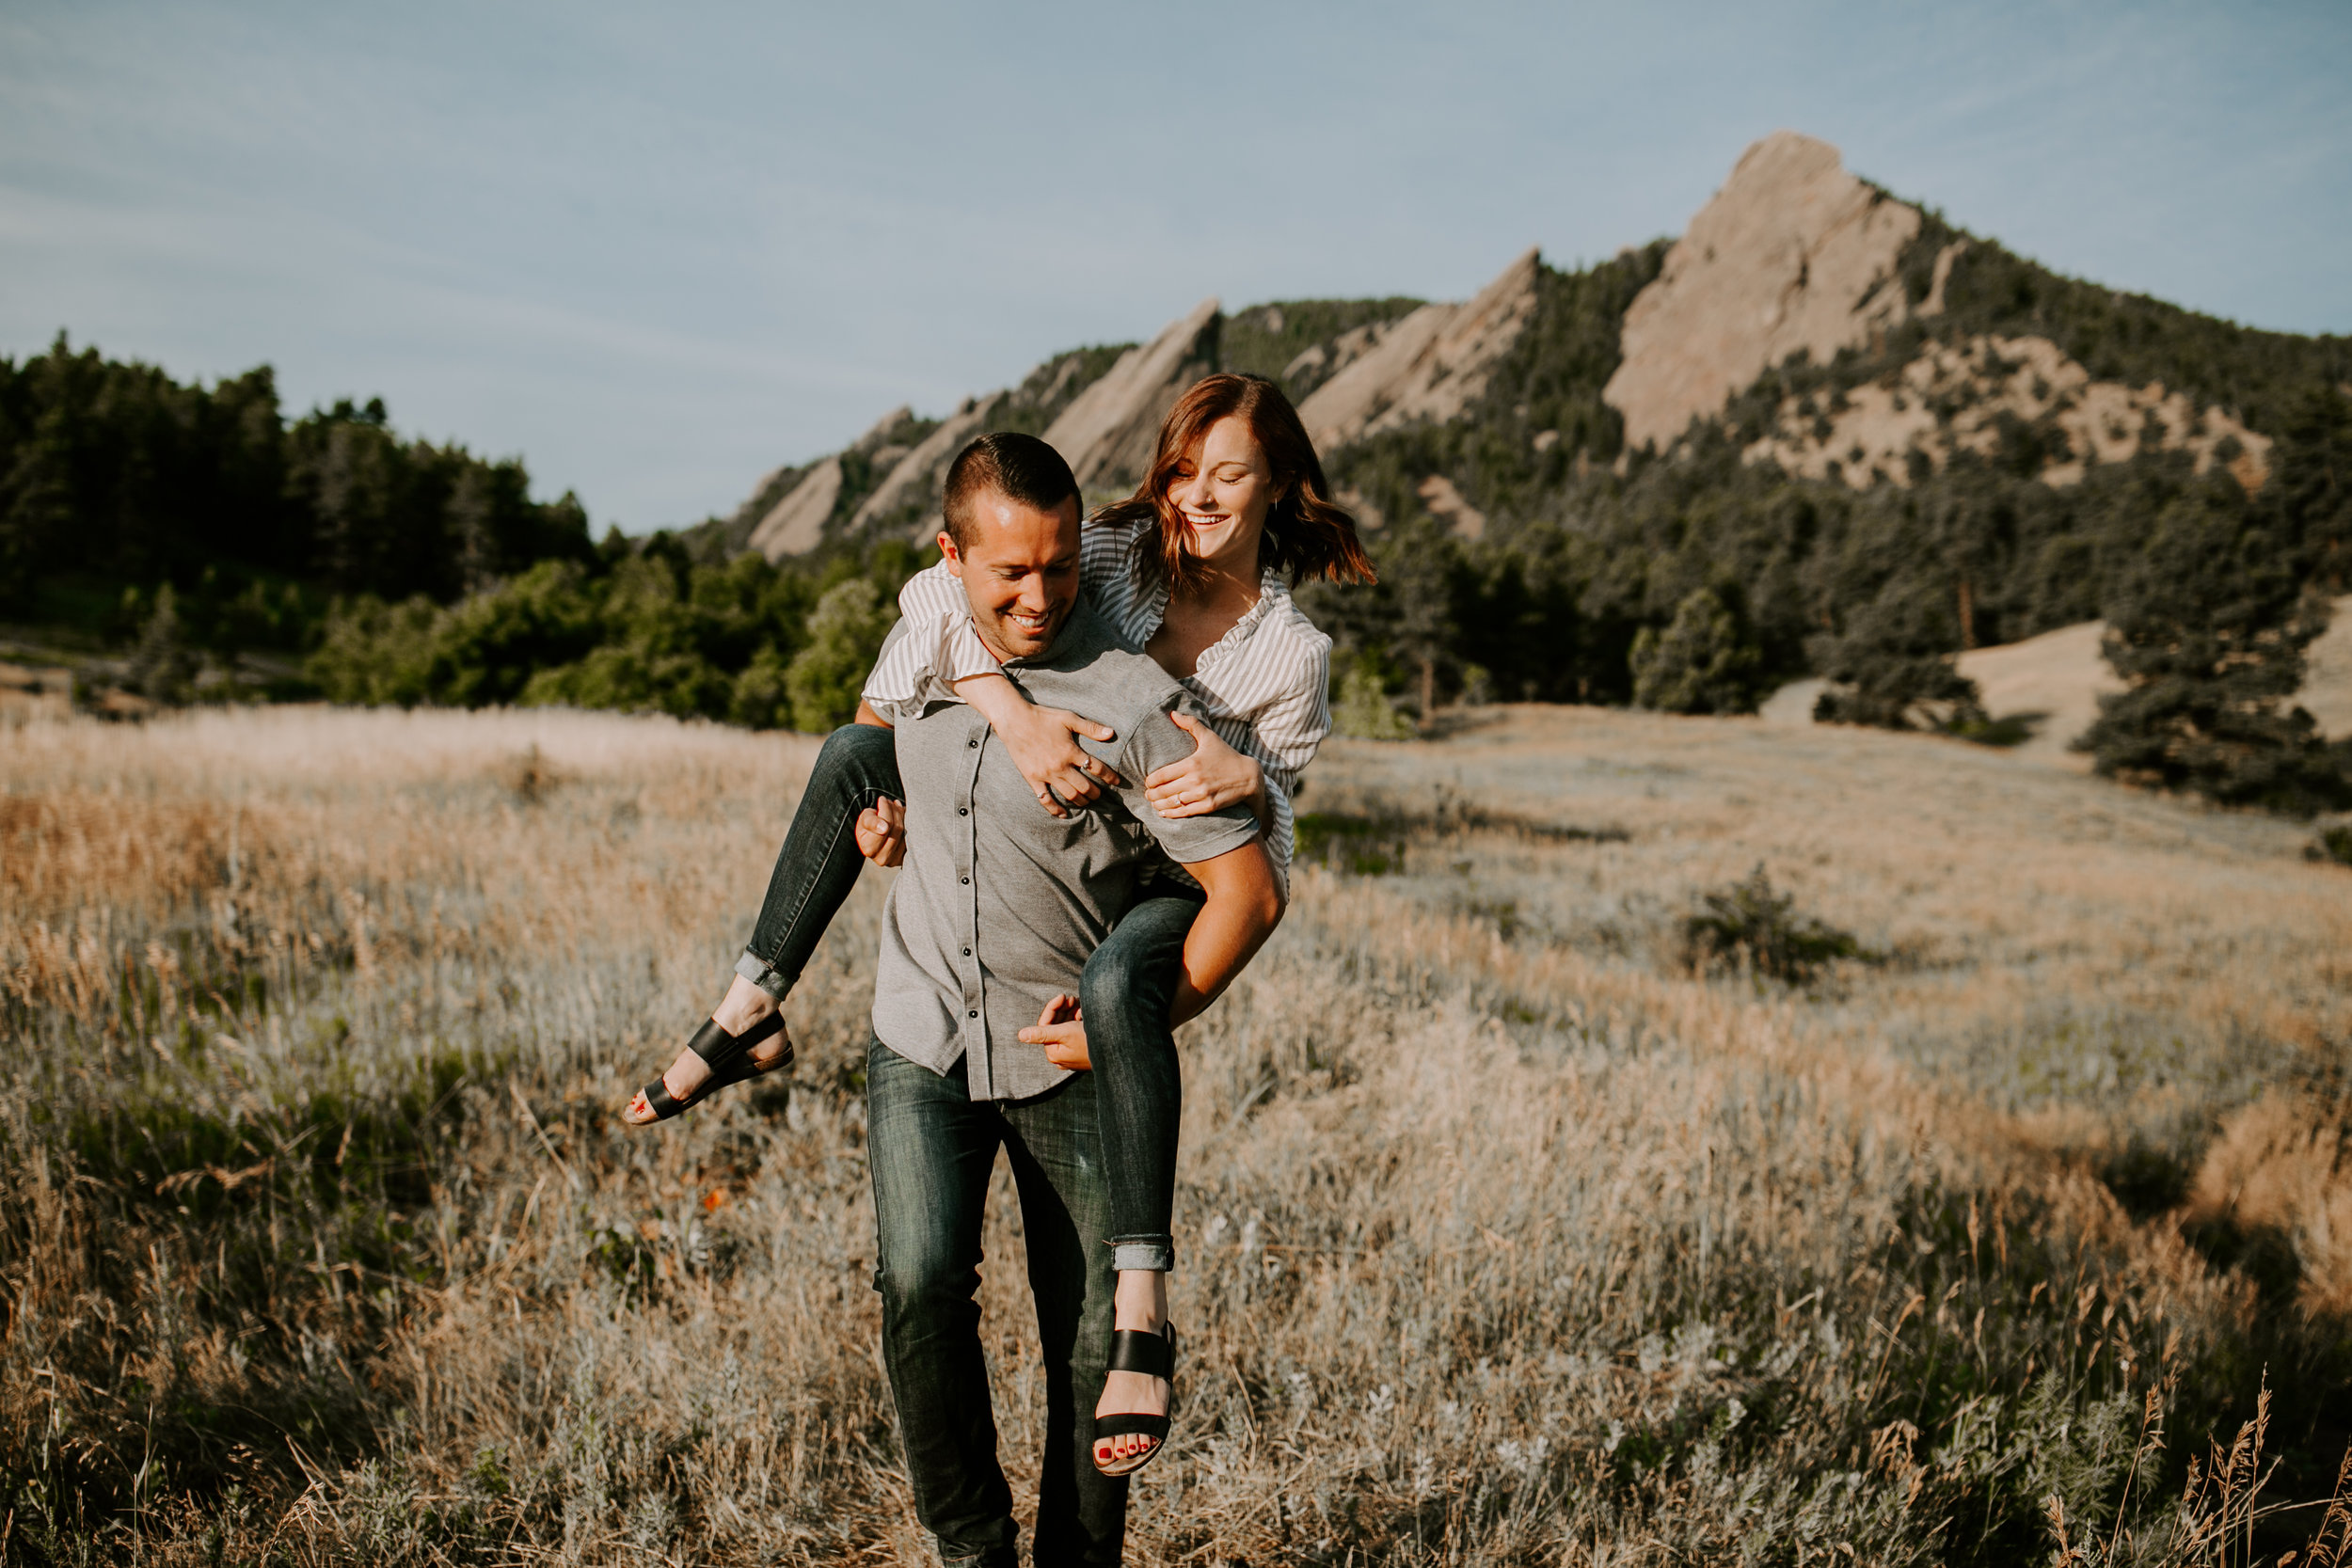 gracetphotography-denver-colorado-adventure-session-elopement-wedding-photographer-34.jpg